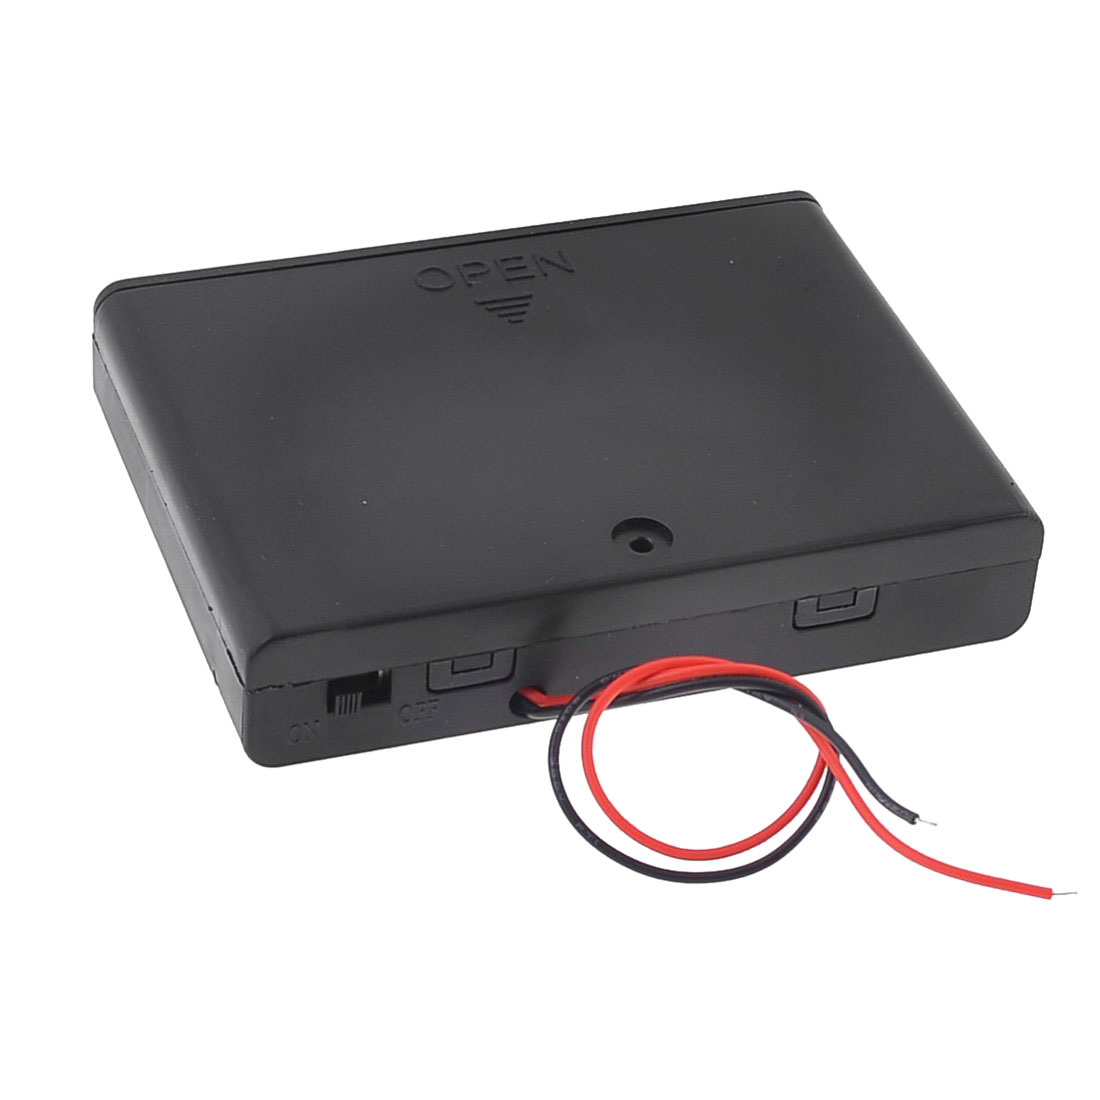 EDT-Spring <font><b>Clip</b></font> 6&#215;1.5V AA <font><b>Battery</b></font> Holder Storage Case ON/OFF Switch with Cap